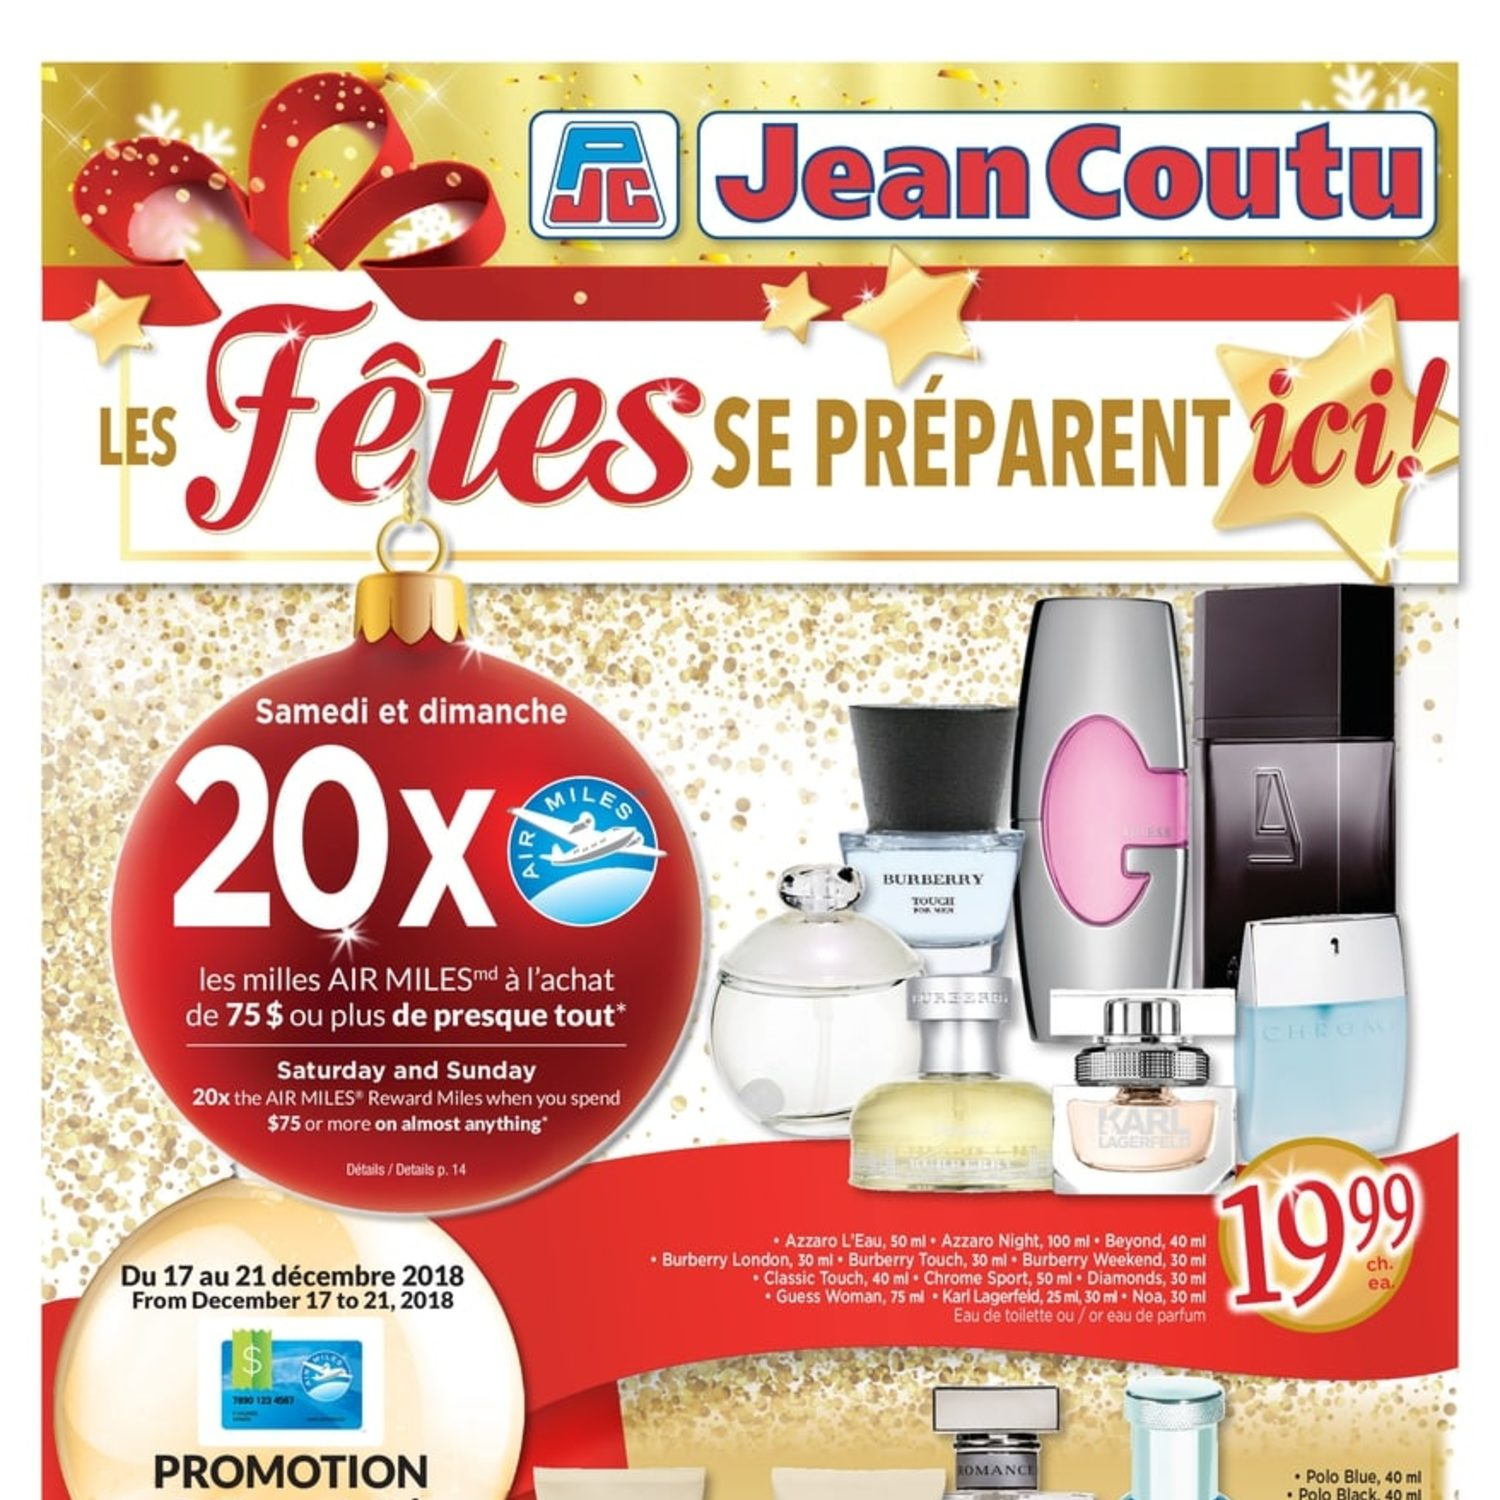 Jean Coutu Weekly Flyer Wrap Up The Holidays Dec 13 19